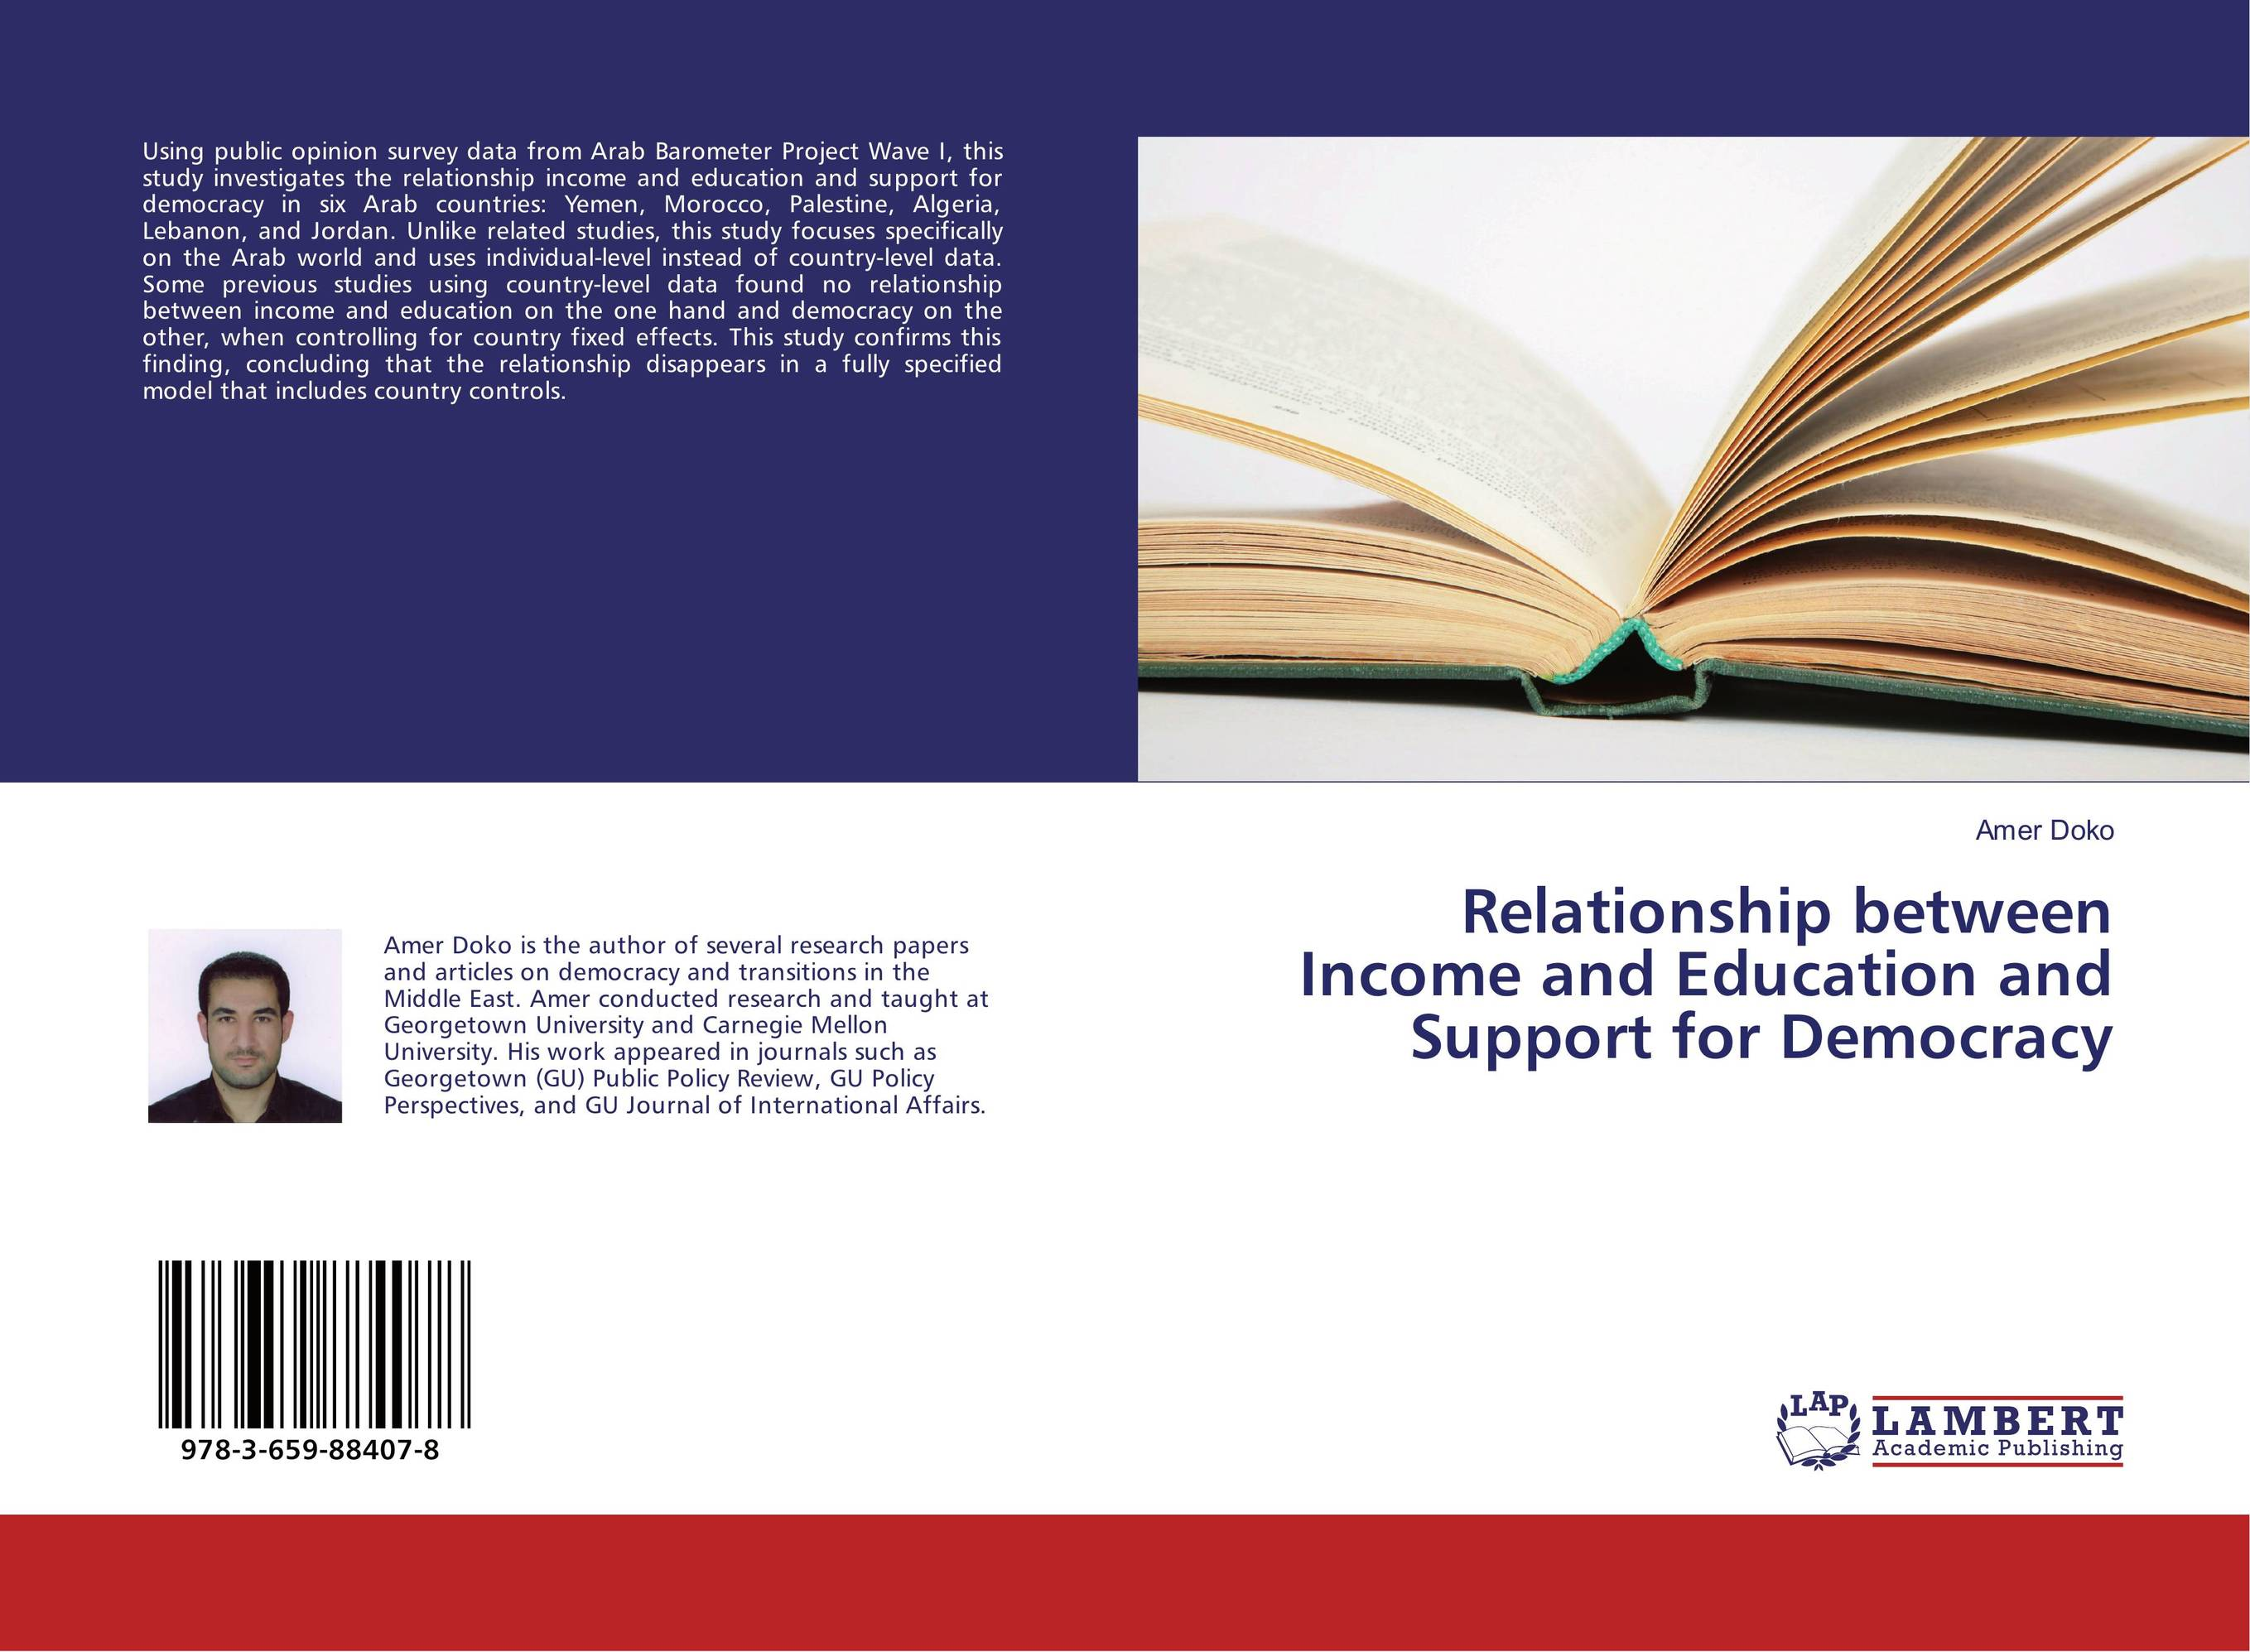 Relationship between Income and Education and Support for Democracy moorad choudhry fixed income securities and derivatives handbook